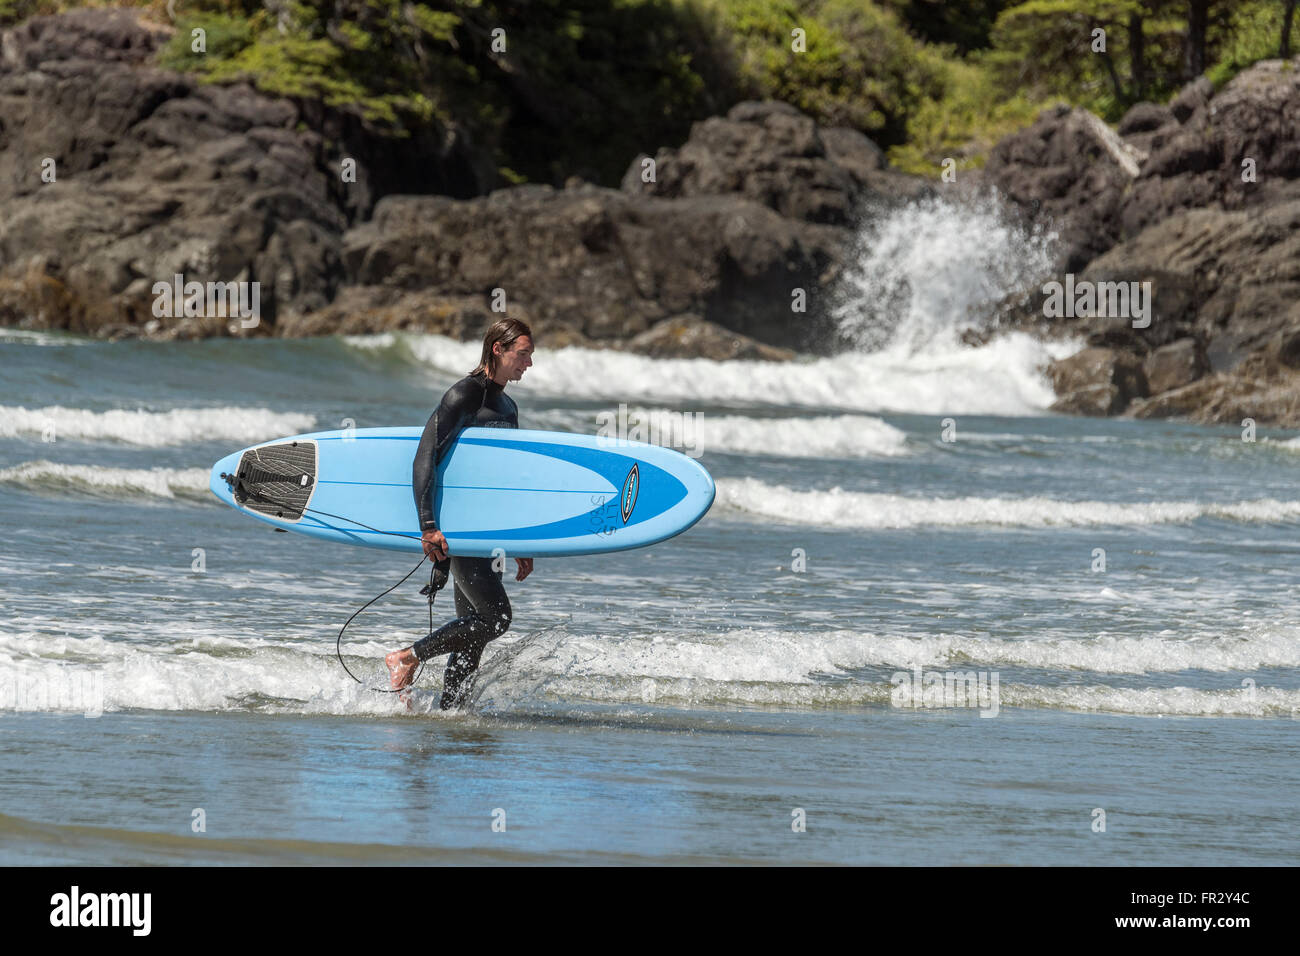 Gentle surf, North Chesterman beach, Tofino, British Columbia - Stock Image